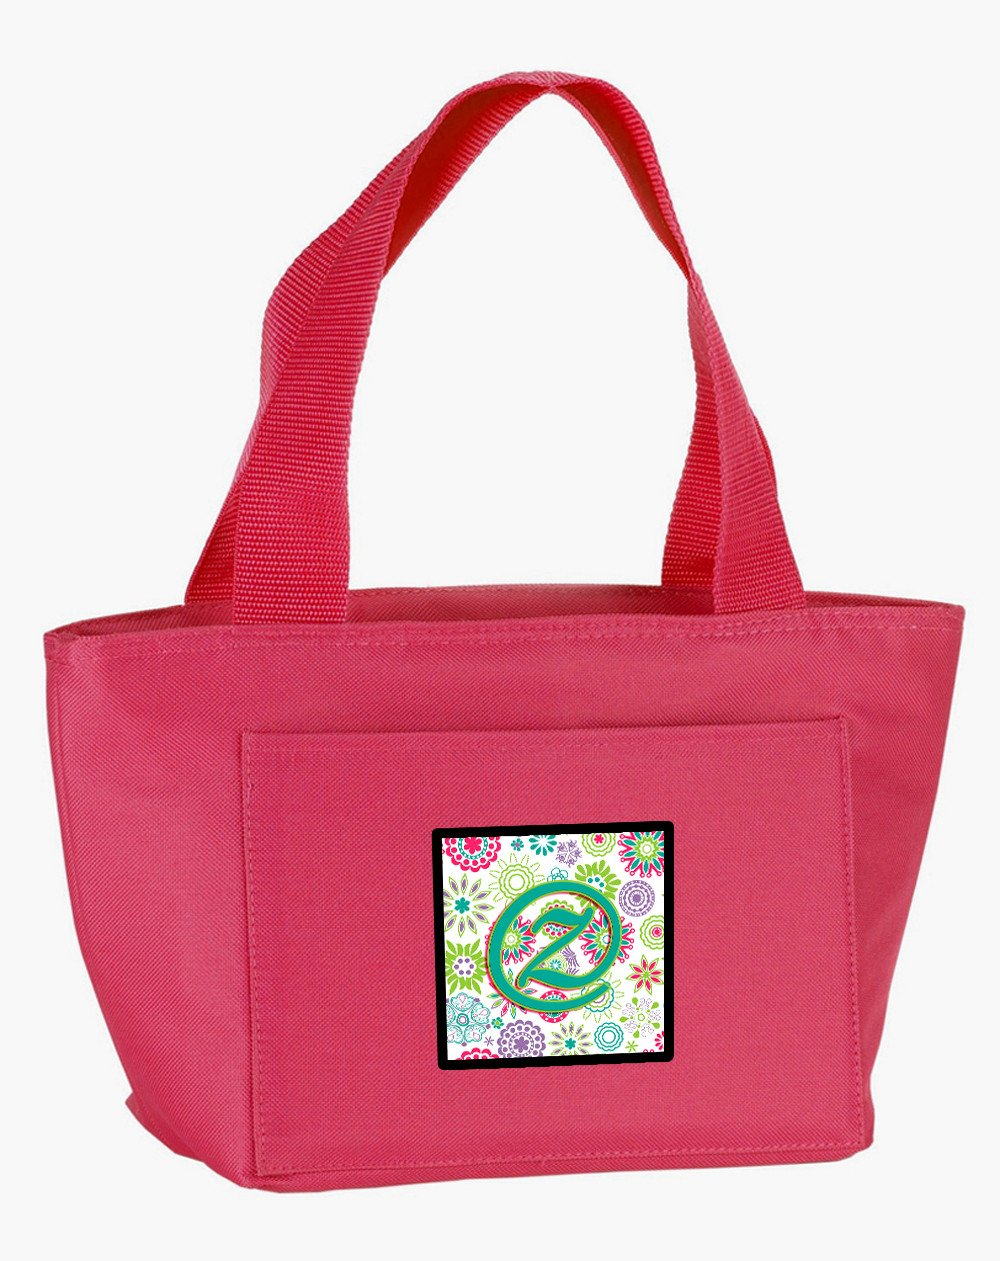 Letter Z Flowers Pink Teal Green Initial Lunch Bag CJ2011-ZPK-8808 by Caroline's Treasures